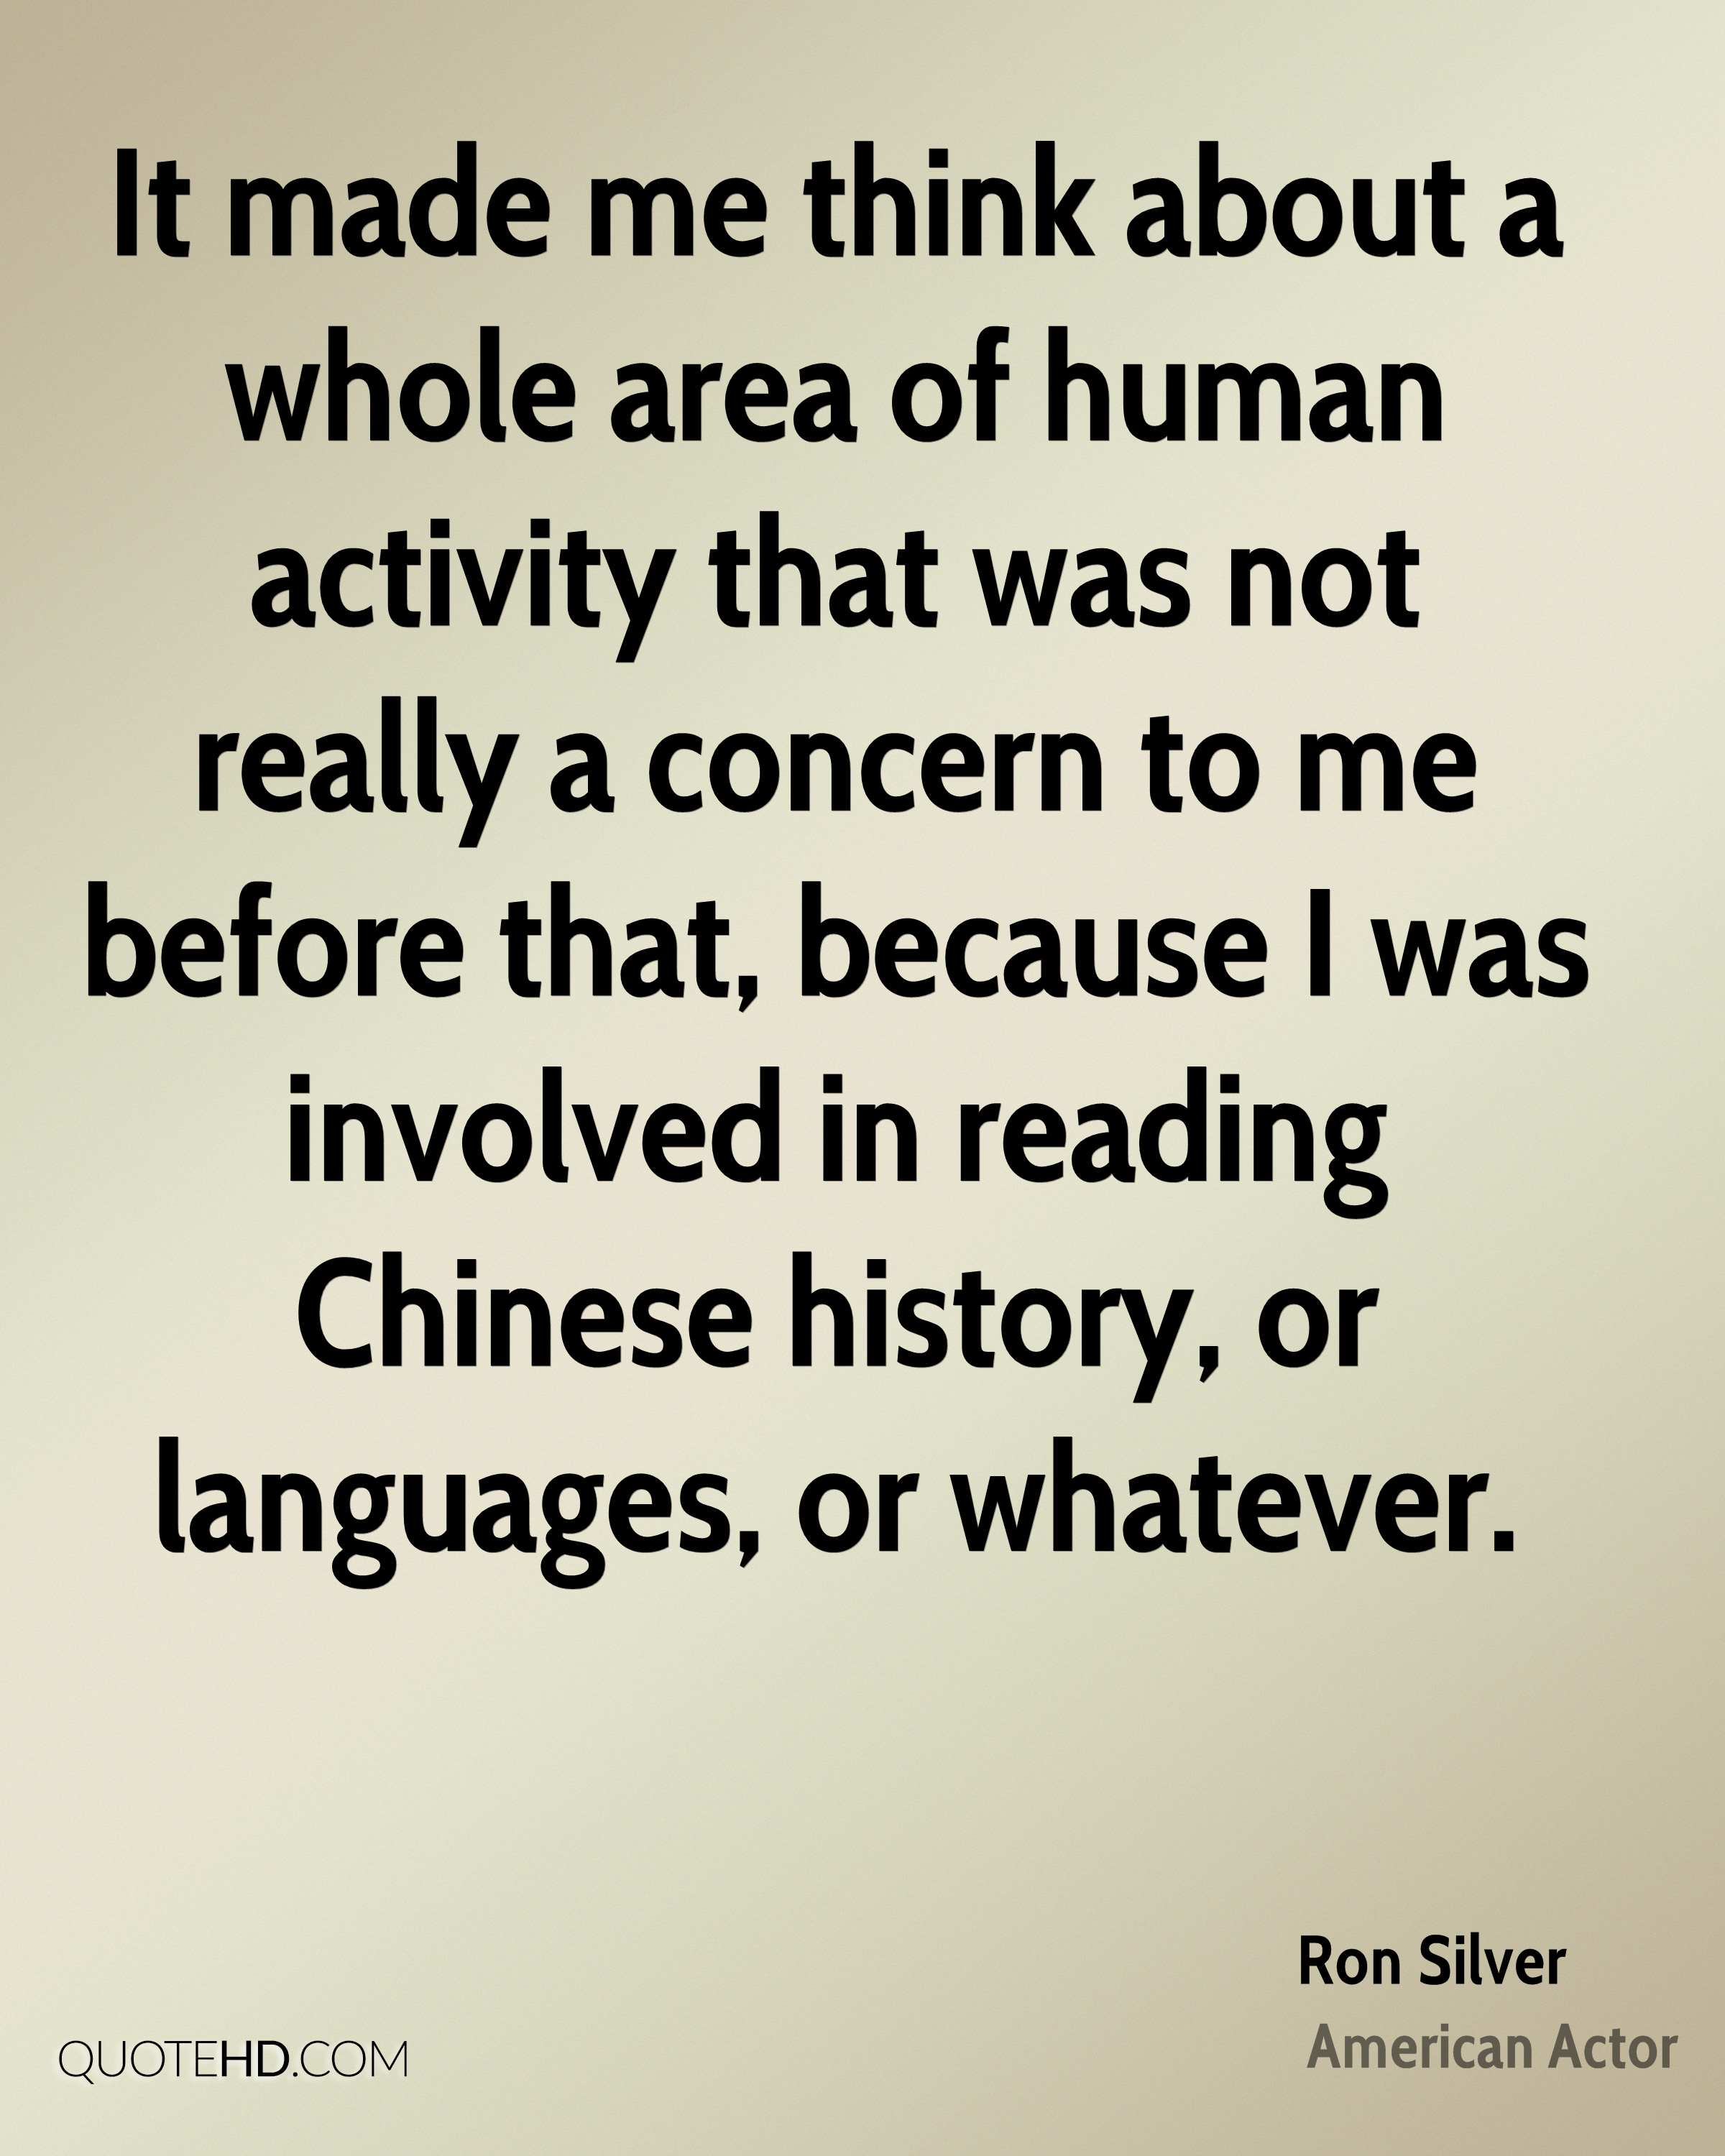 It made me think about a whole area of human activity that was not really a concern to me before that, because I was involved in reading Chinese history, or languages, or whatever.